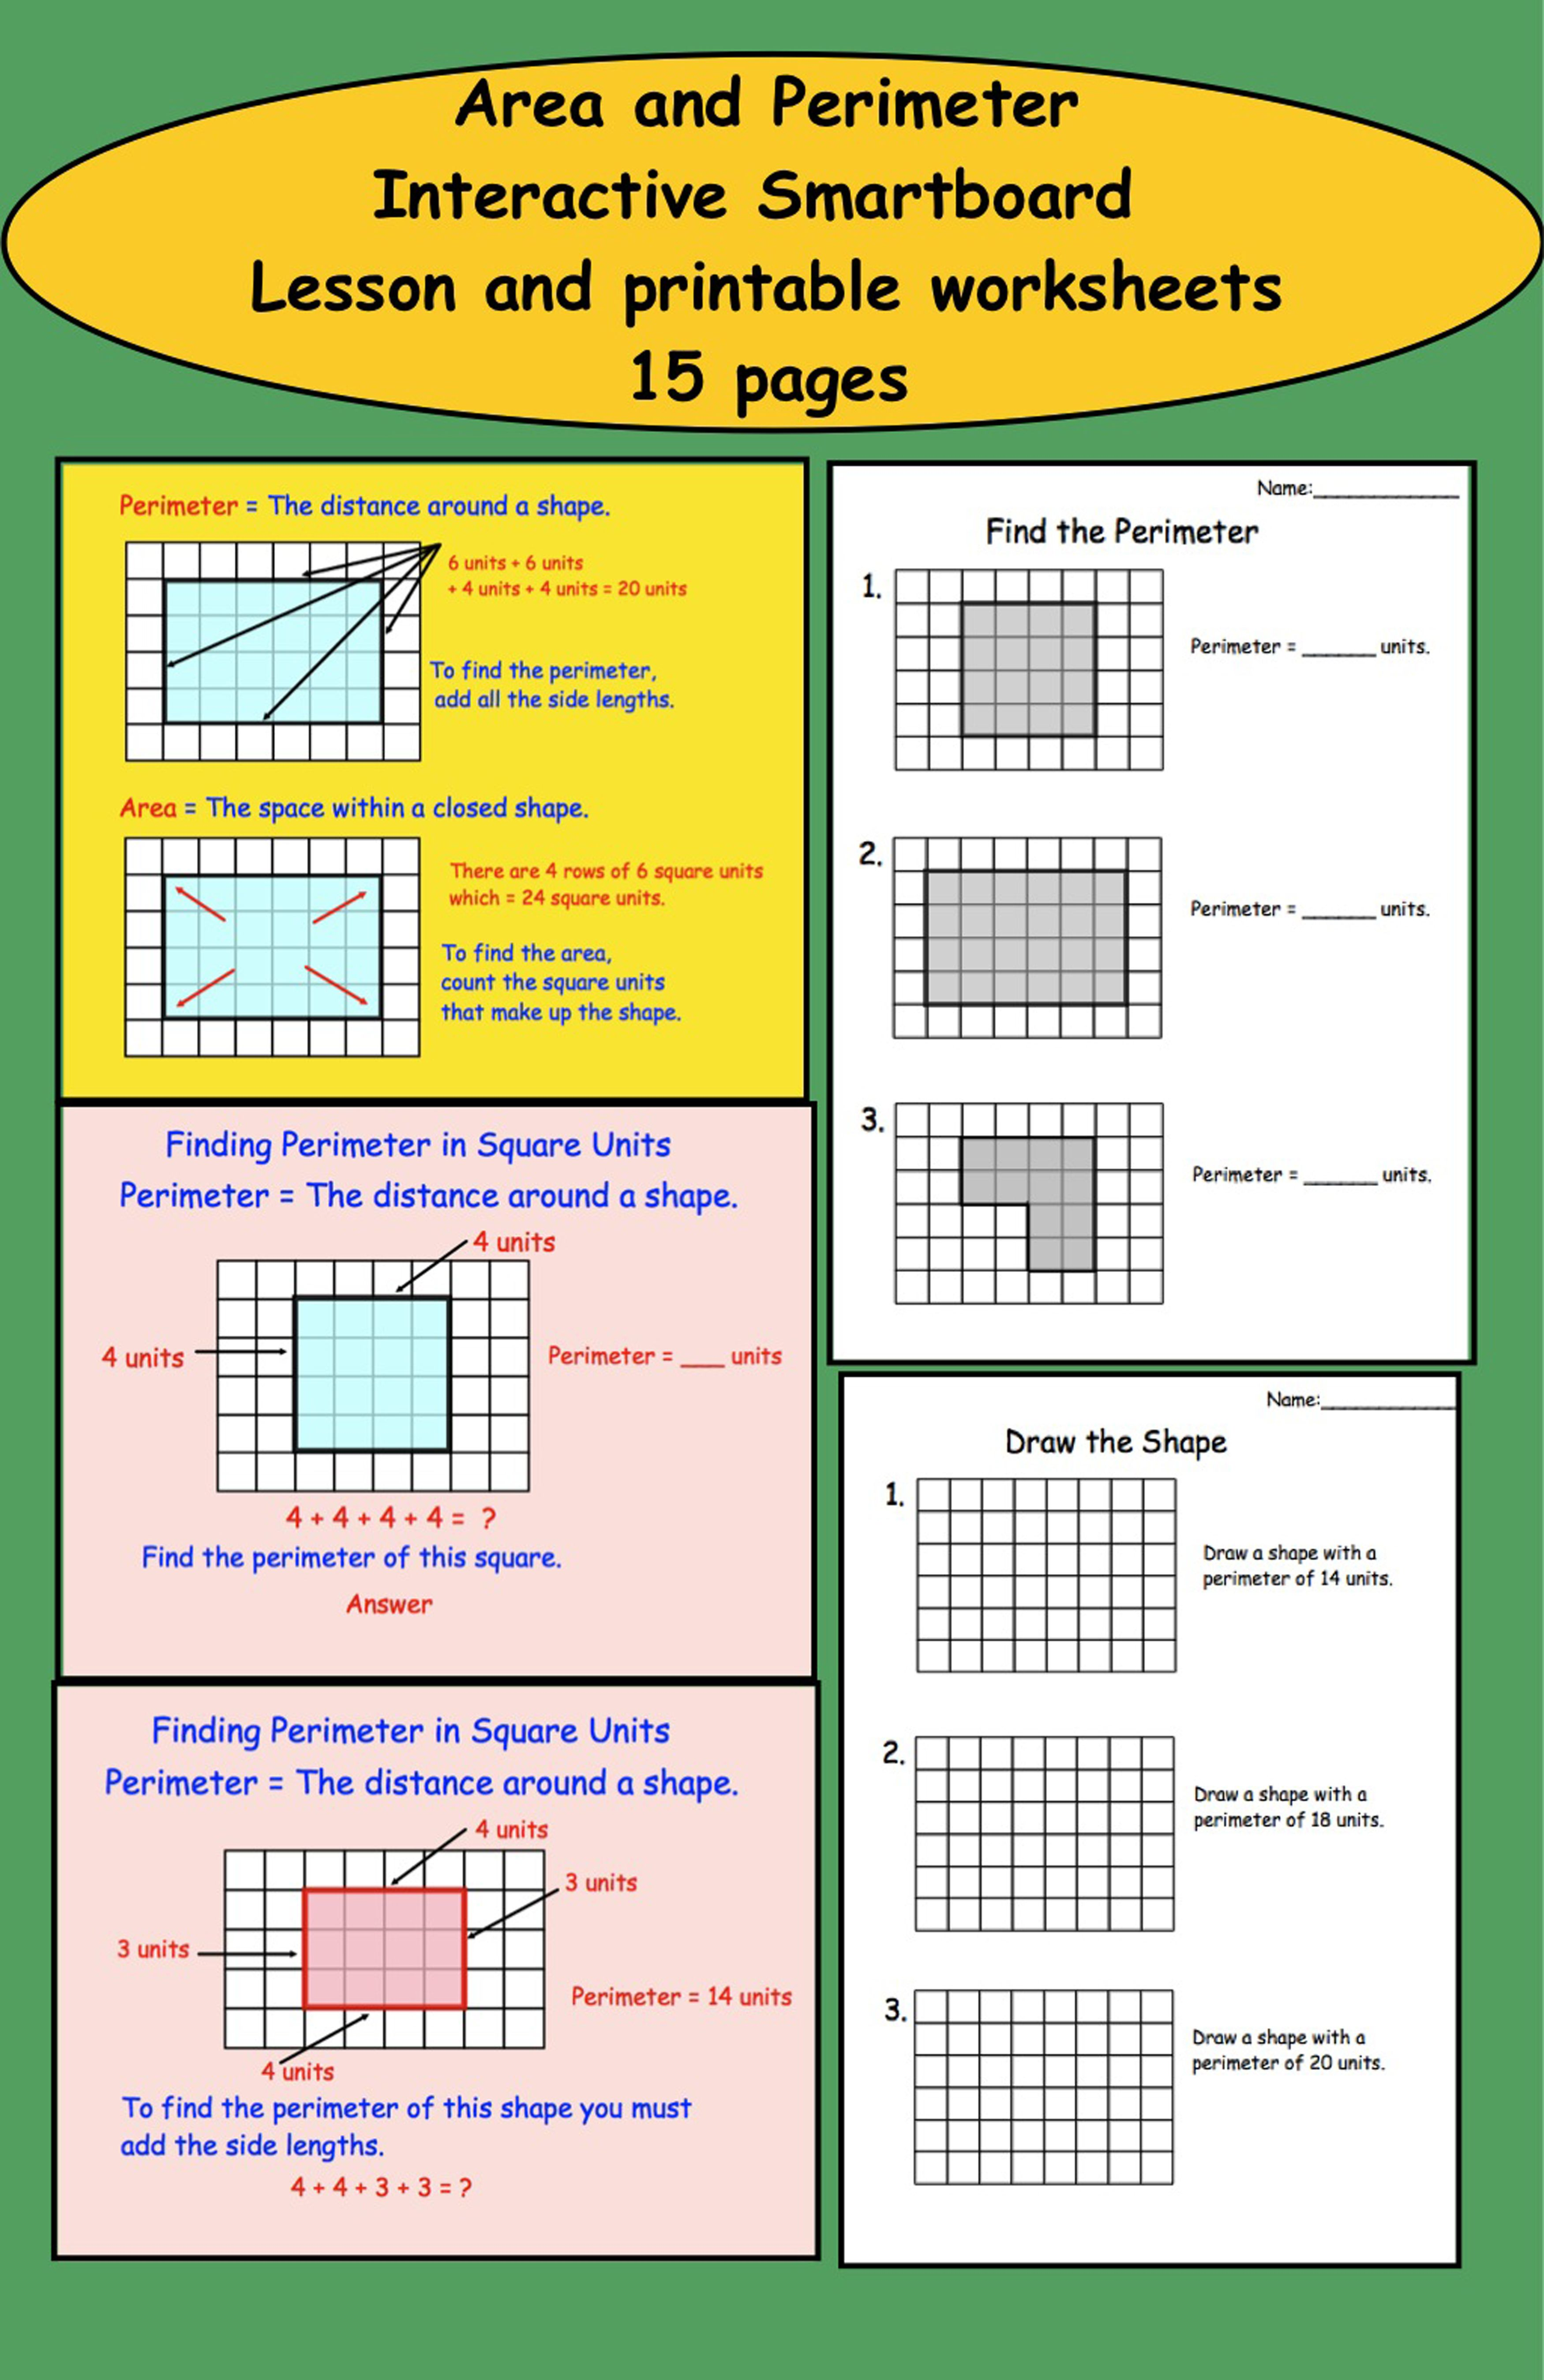 Area And Perimeter Interactive Smartboard Lesson For Gr 3 With Printables